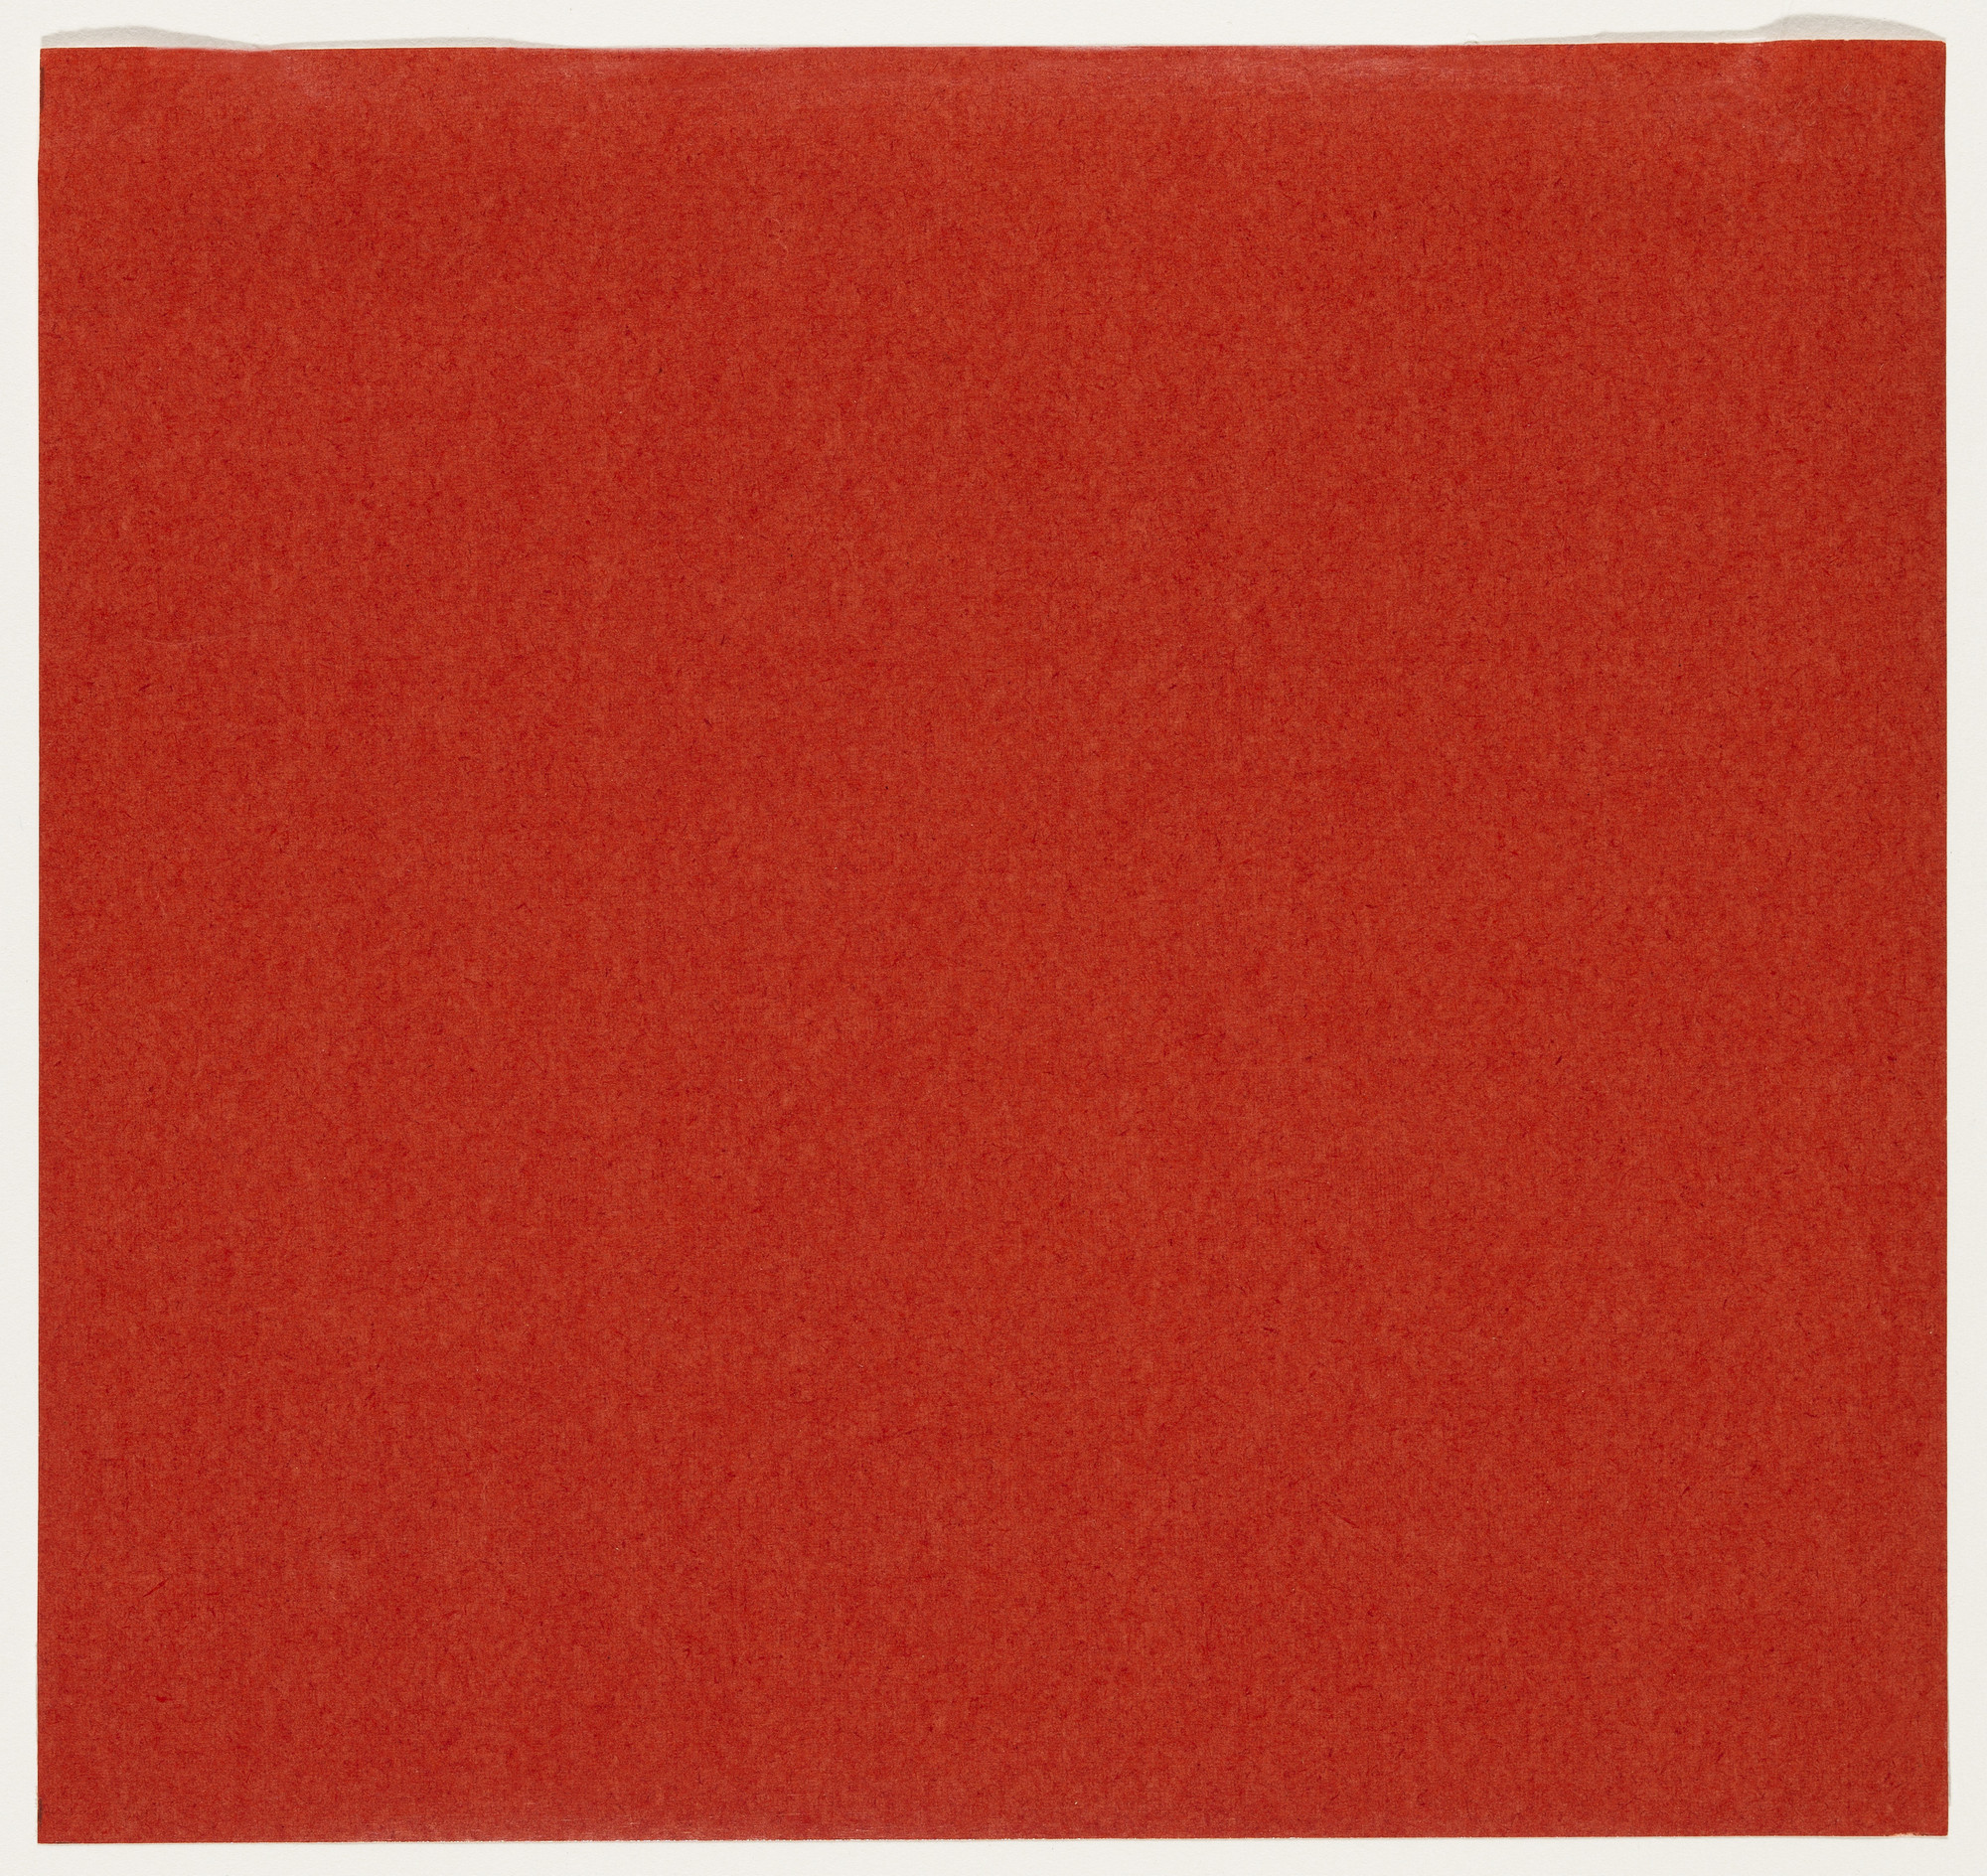 Ellsworth Kelly. Red from the series Line Form Color. 1951